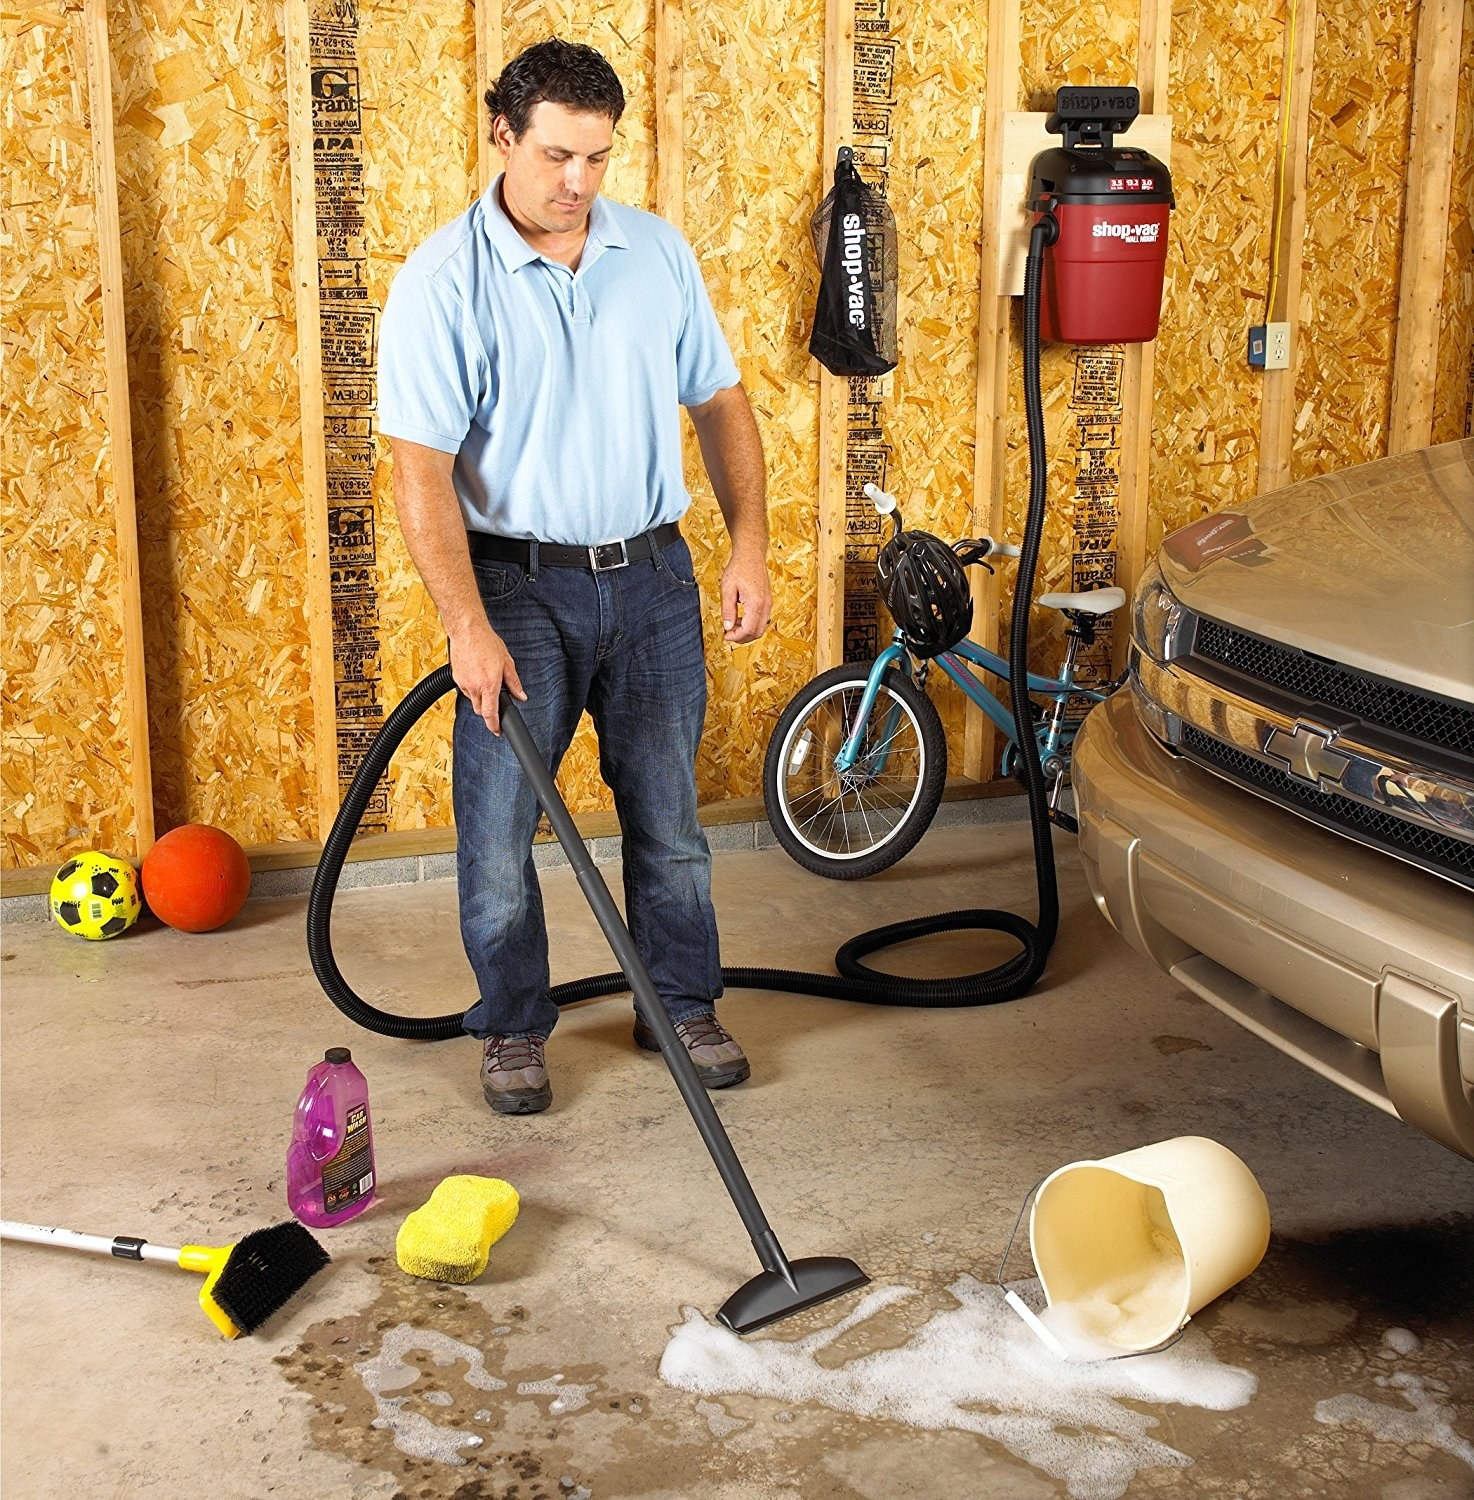 21 Ways To Make Your Mess Of A Garage So Much Better